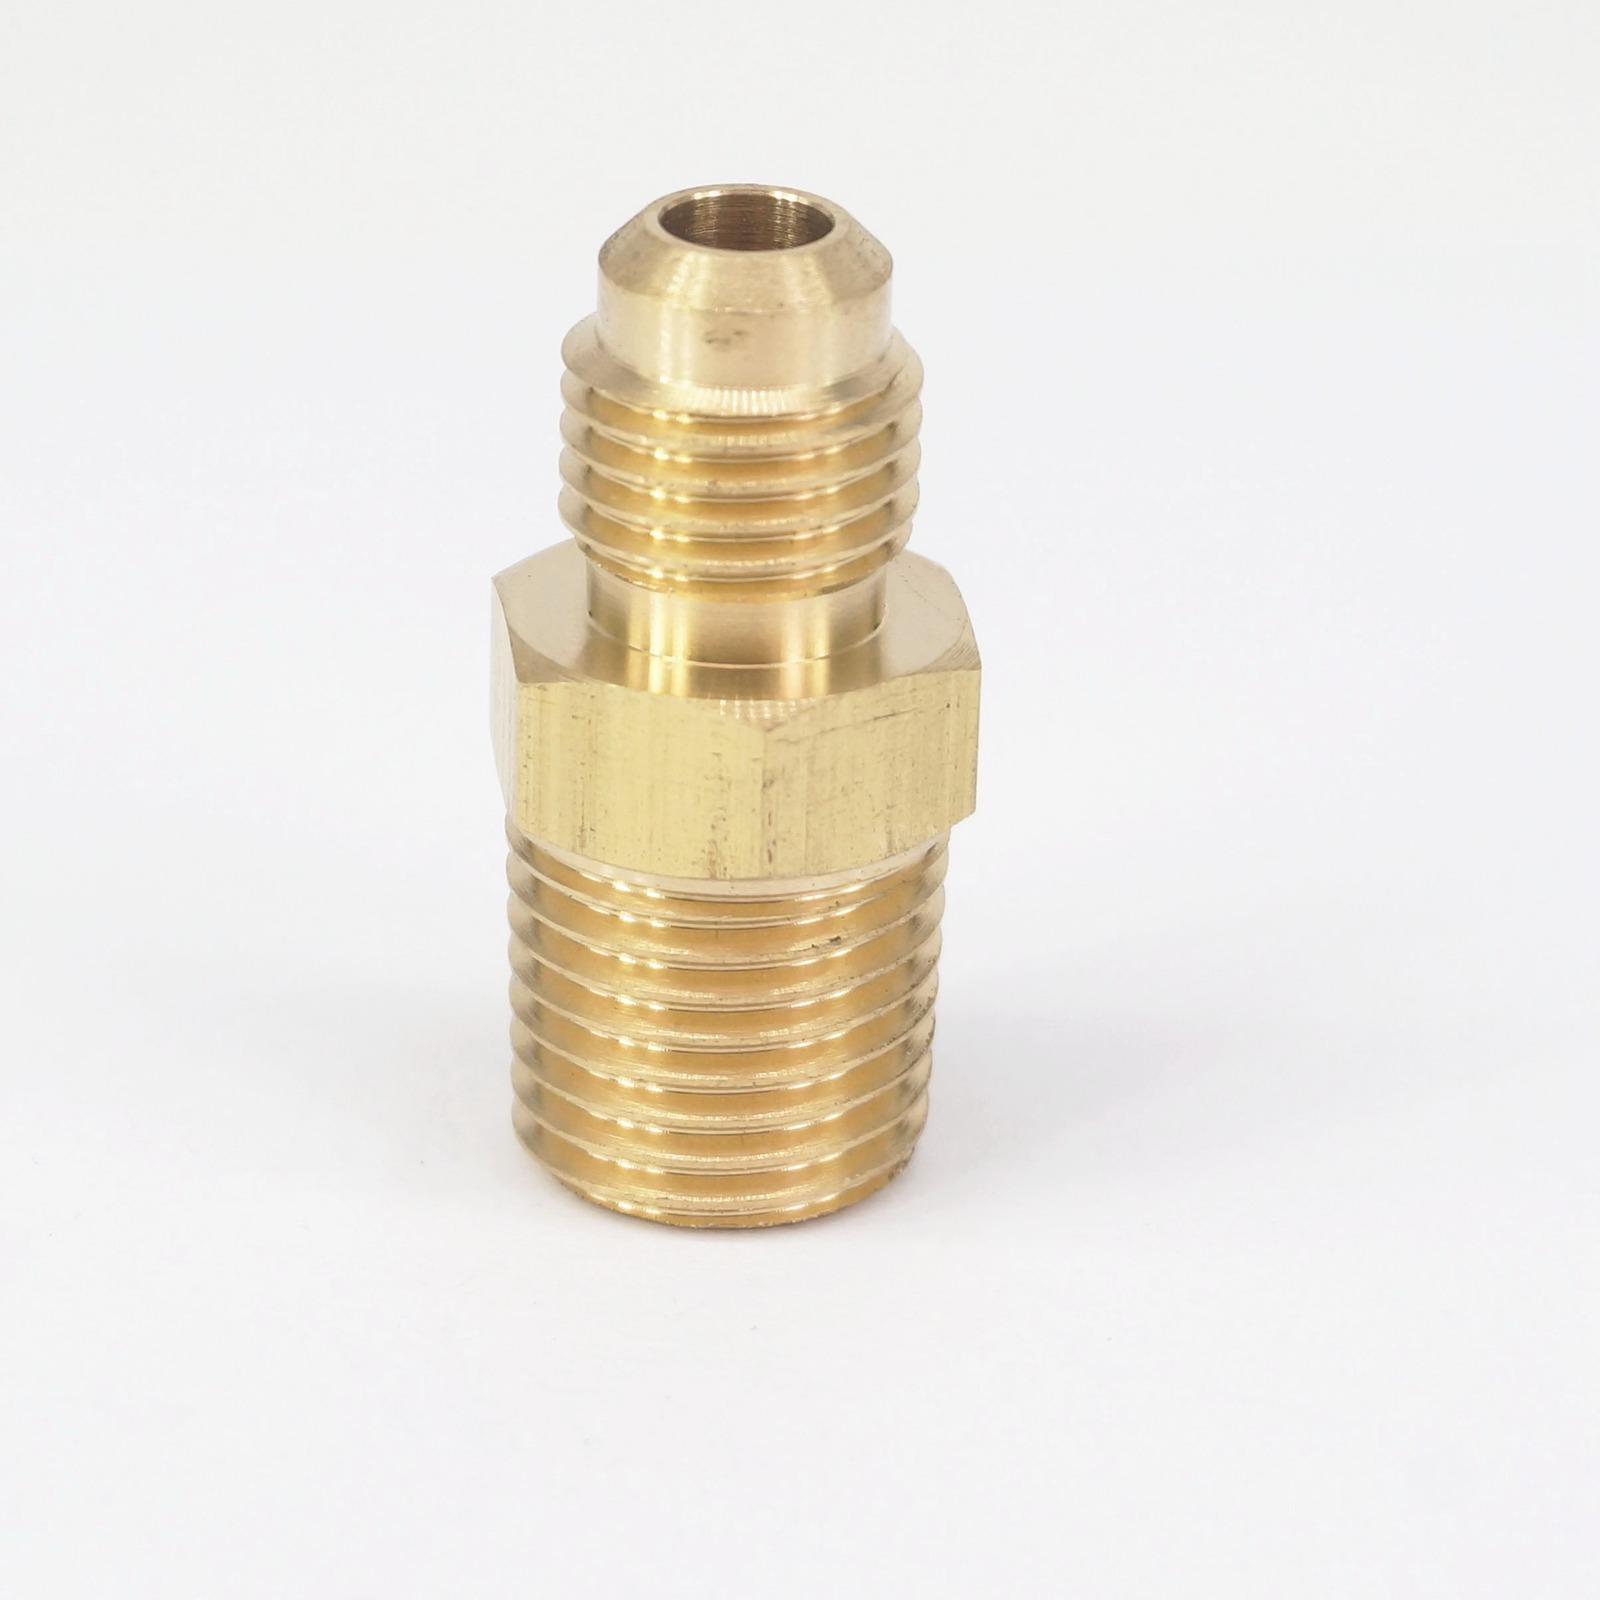 Stainless Steel 4 AN Male Flare to 1//8 NPT Male Hose Fitting Adapter